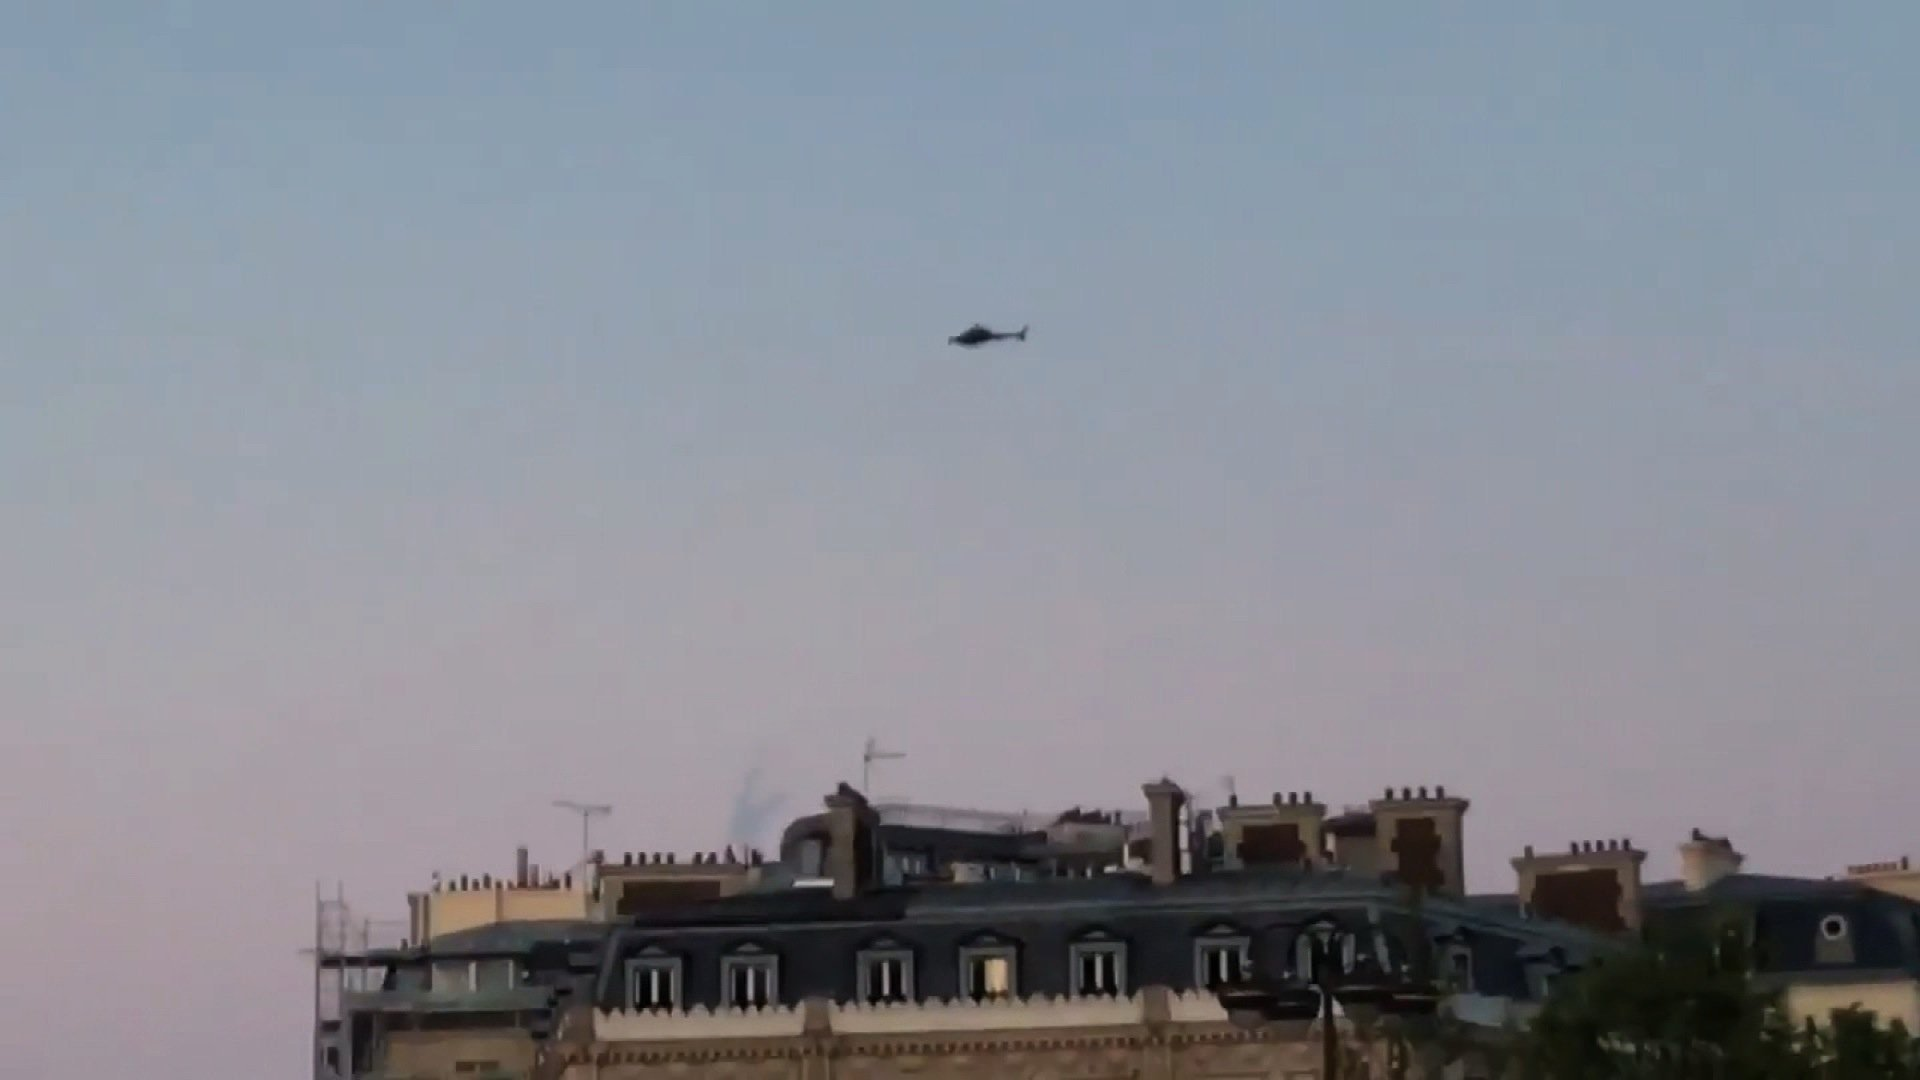 A helicopter can be seen above the Champs-Elysées area in Paris, France, after gunshots were reported on April 20, 2017.